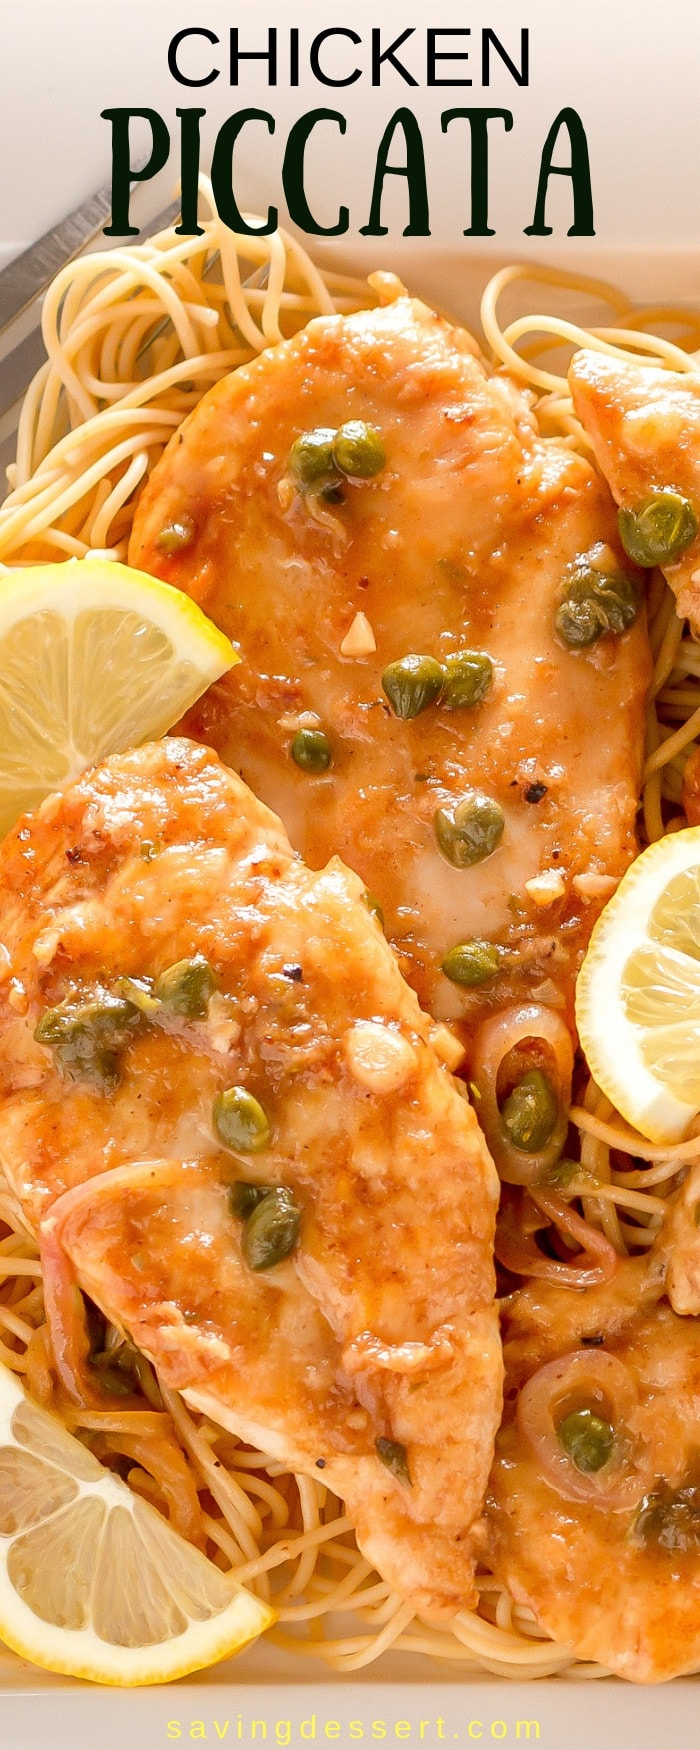 Try this classic Chicken Piccata Recipe made with tender chicken cutlets quickly sautéed then simmered in a light lemony, white wine sauce. Serve over pasta with capers and lemon wedges for an easy weeknight meal. #savingroomfordessert #chicken #chickenpiccata #easypiccata #chickenpiccatarecipe #chickencutlets #weeknightdinner #italian